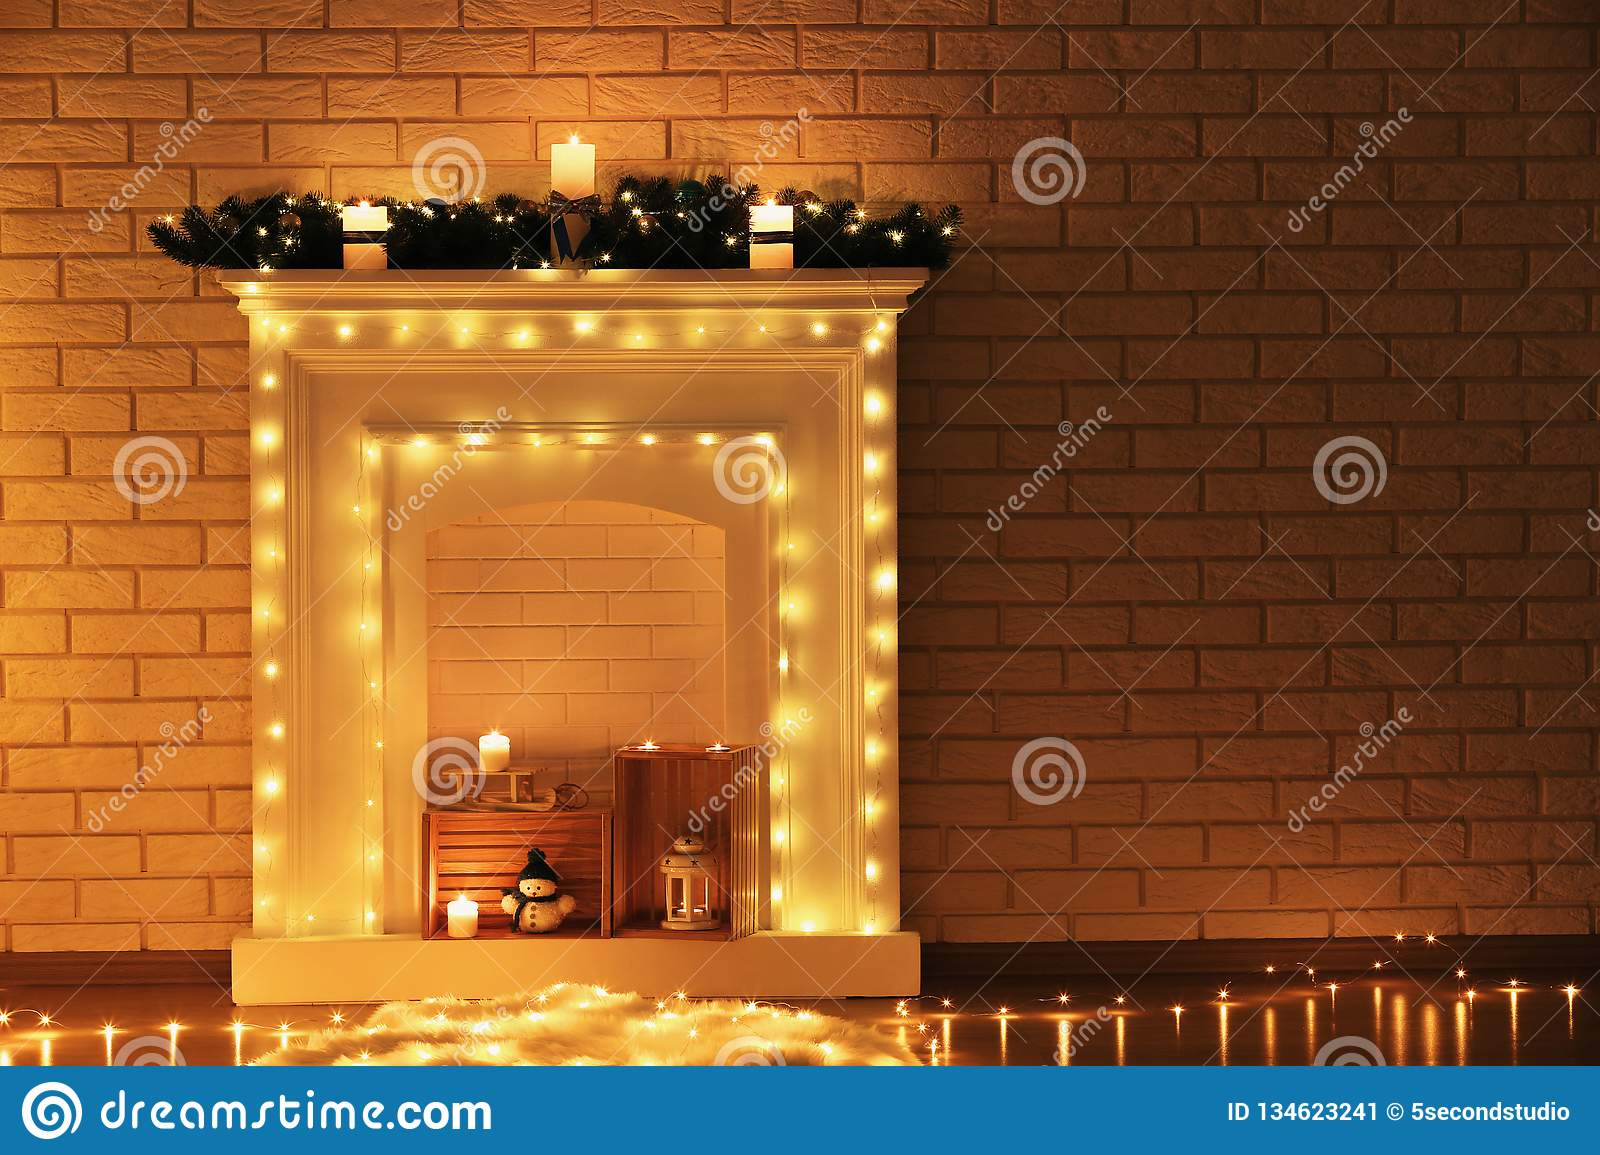 Decorated Fireplace With Candles Stock Image Image Of Fire